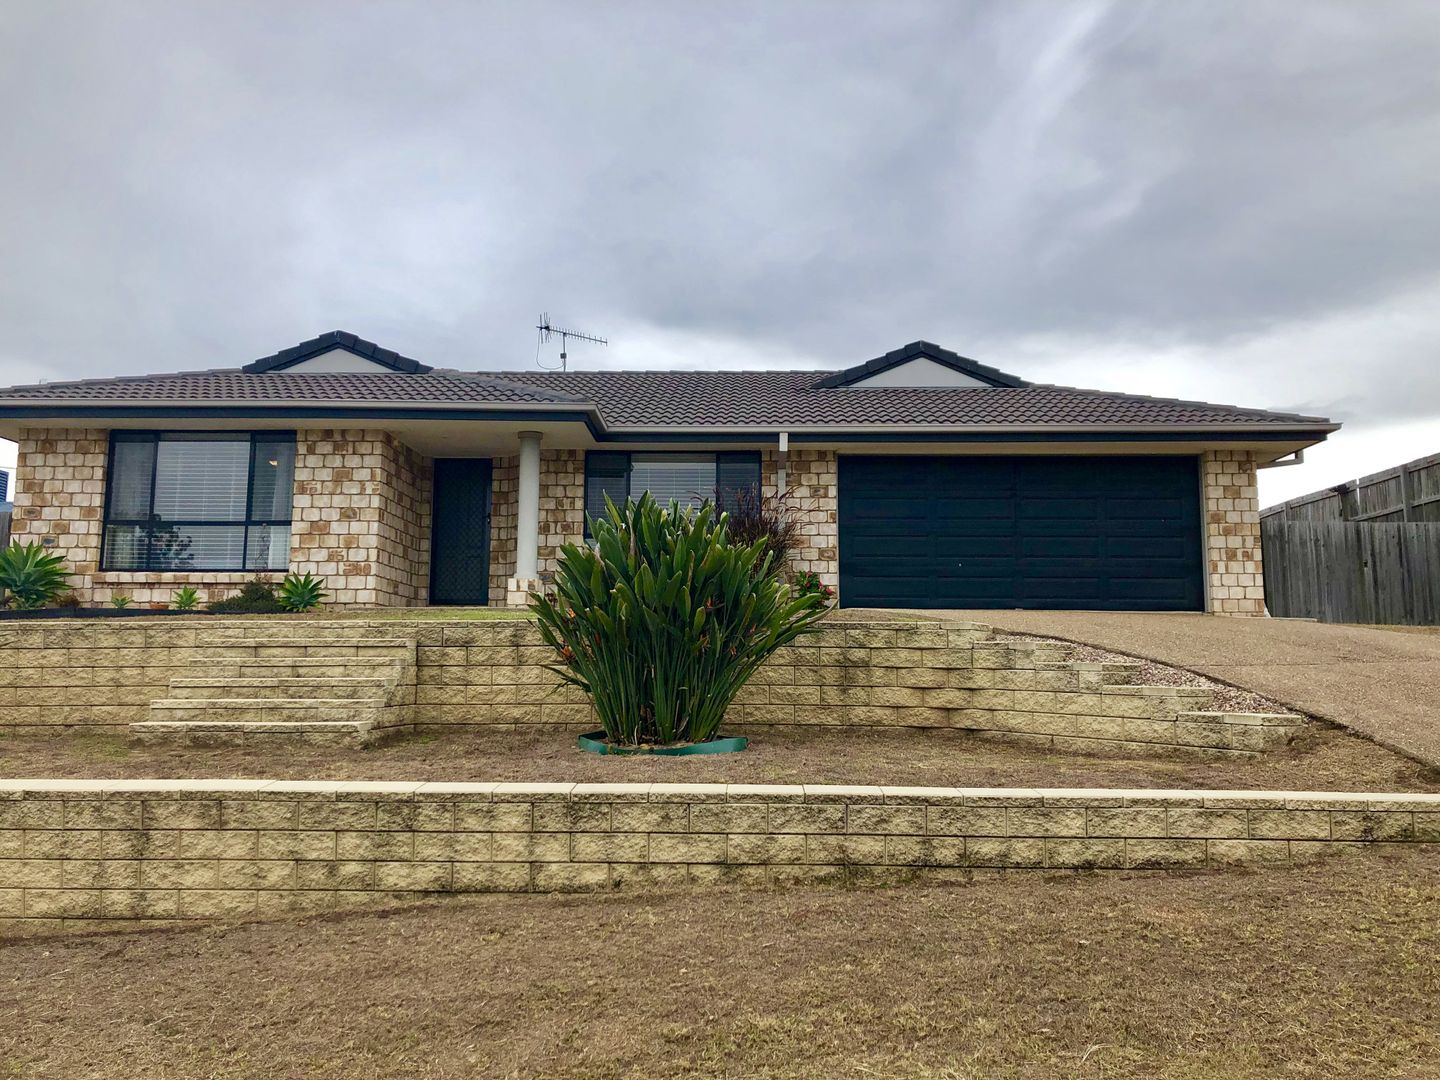 3 Devin Drive, Boonah QLD 4310, Image 0